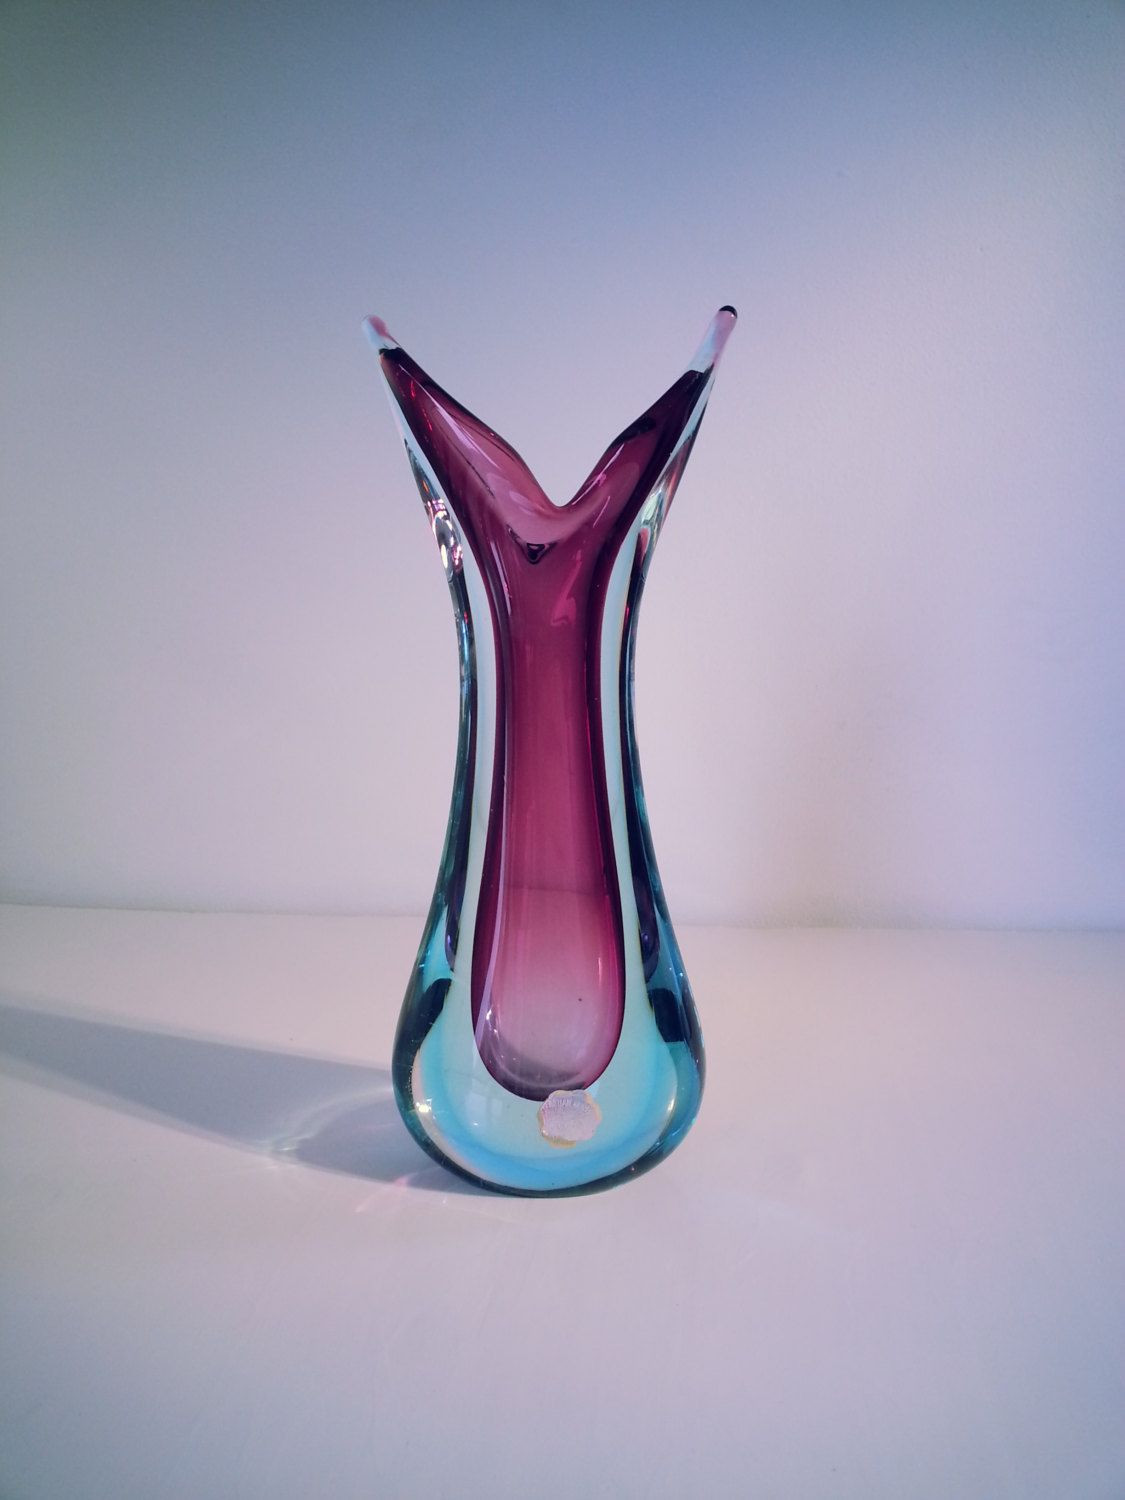 Floor Standing Glass Vase Of Murano sommerso Genuine Venetian Glass 1950s 1960s Purple Blue with Murano sommerso Genuine Venetian Glass 1950s 1960s Purple Blue Glass Vase Pulled Design Vase Made In Italy by Fcollectables On Etsy